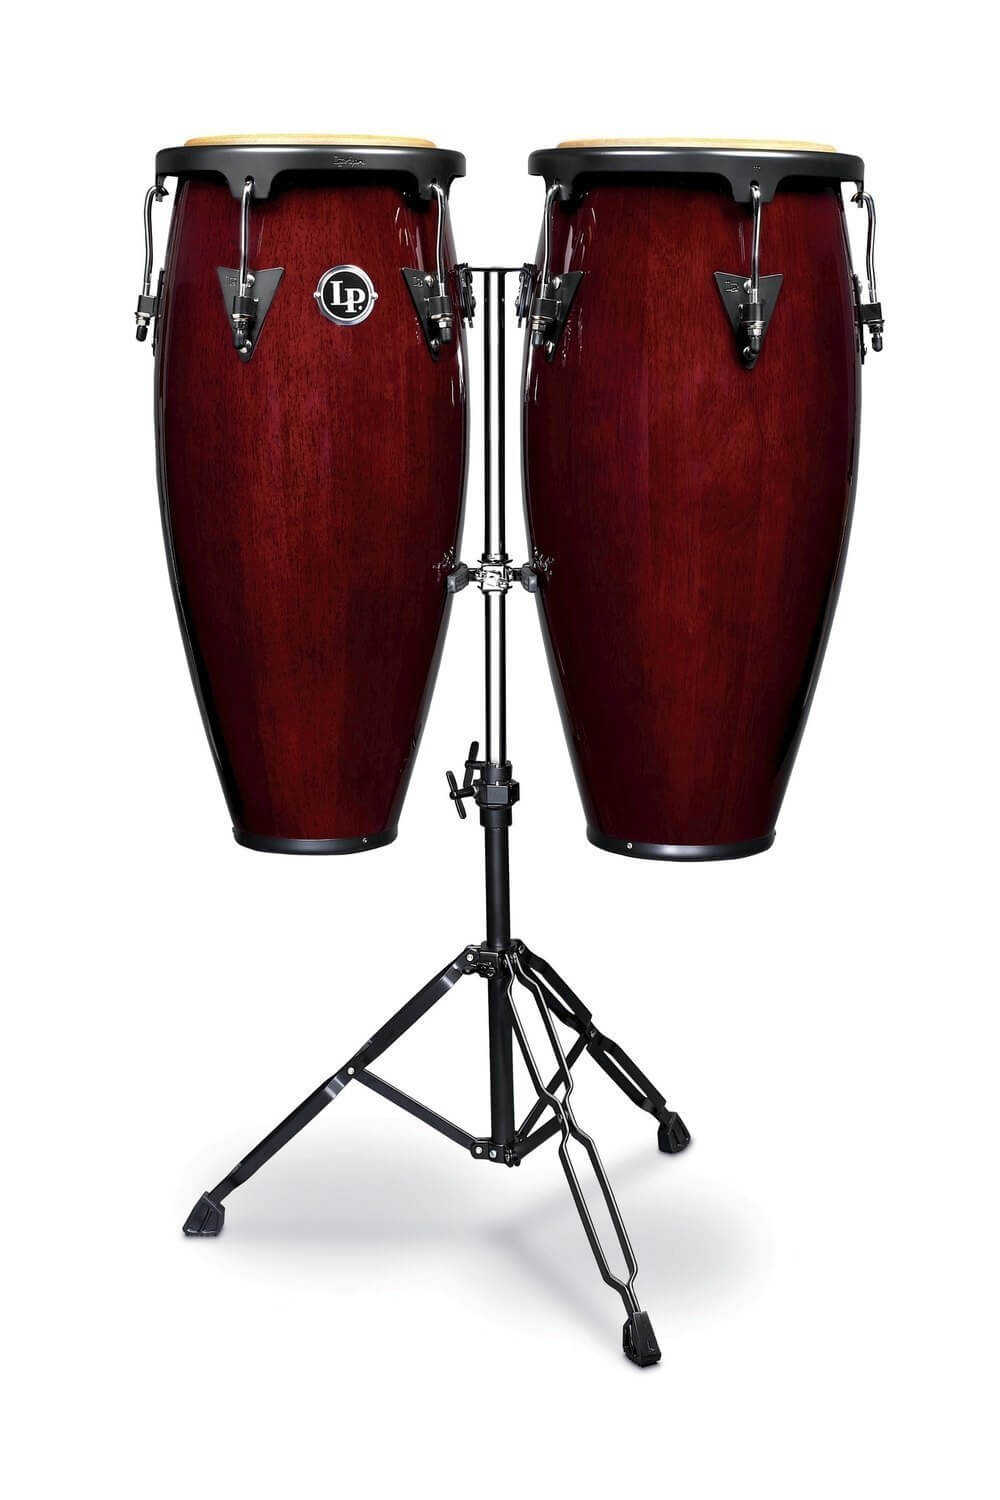 Set Congas Latin Percussion Lpa646 10-11 Dark Wood